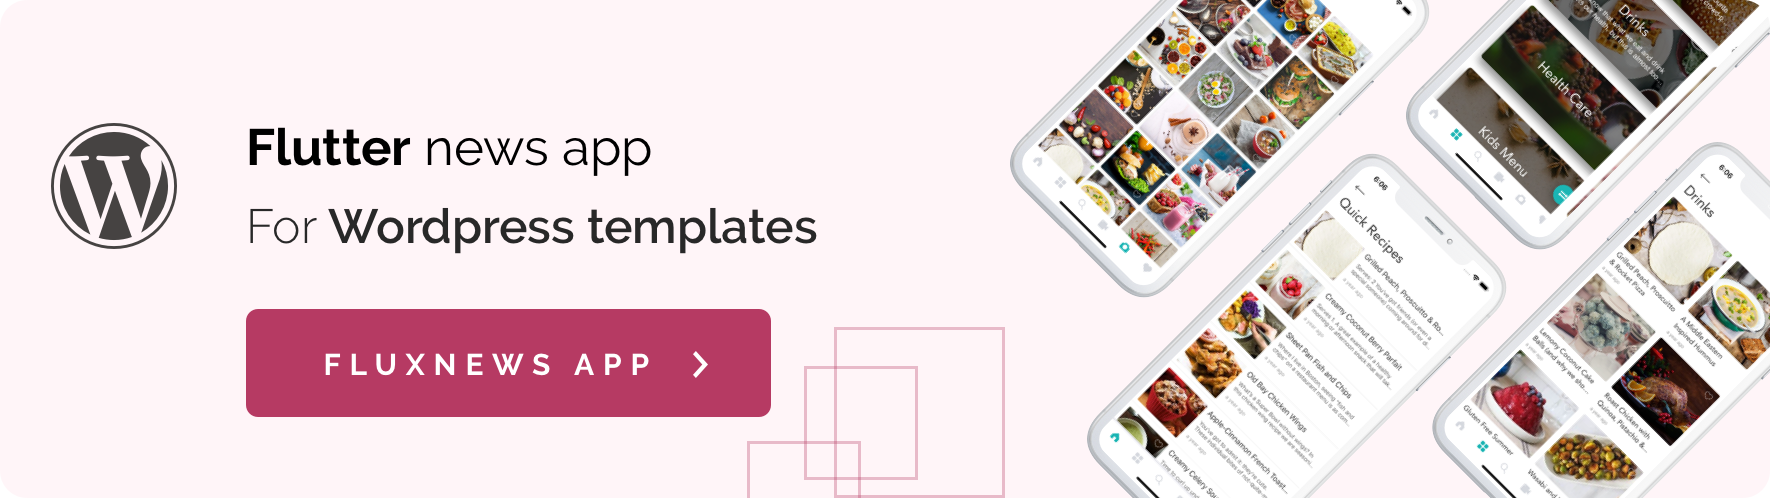 MStore Multi Vendor - Complete React Native template for WooCommerce - 28